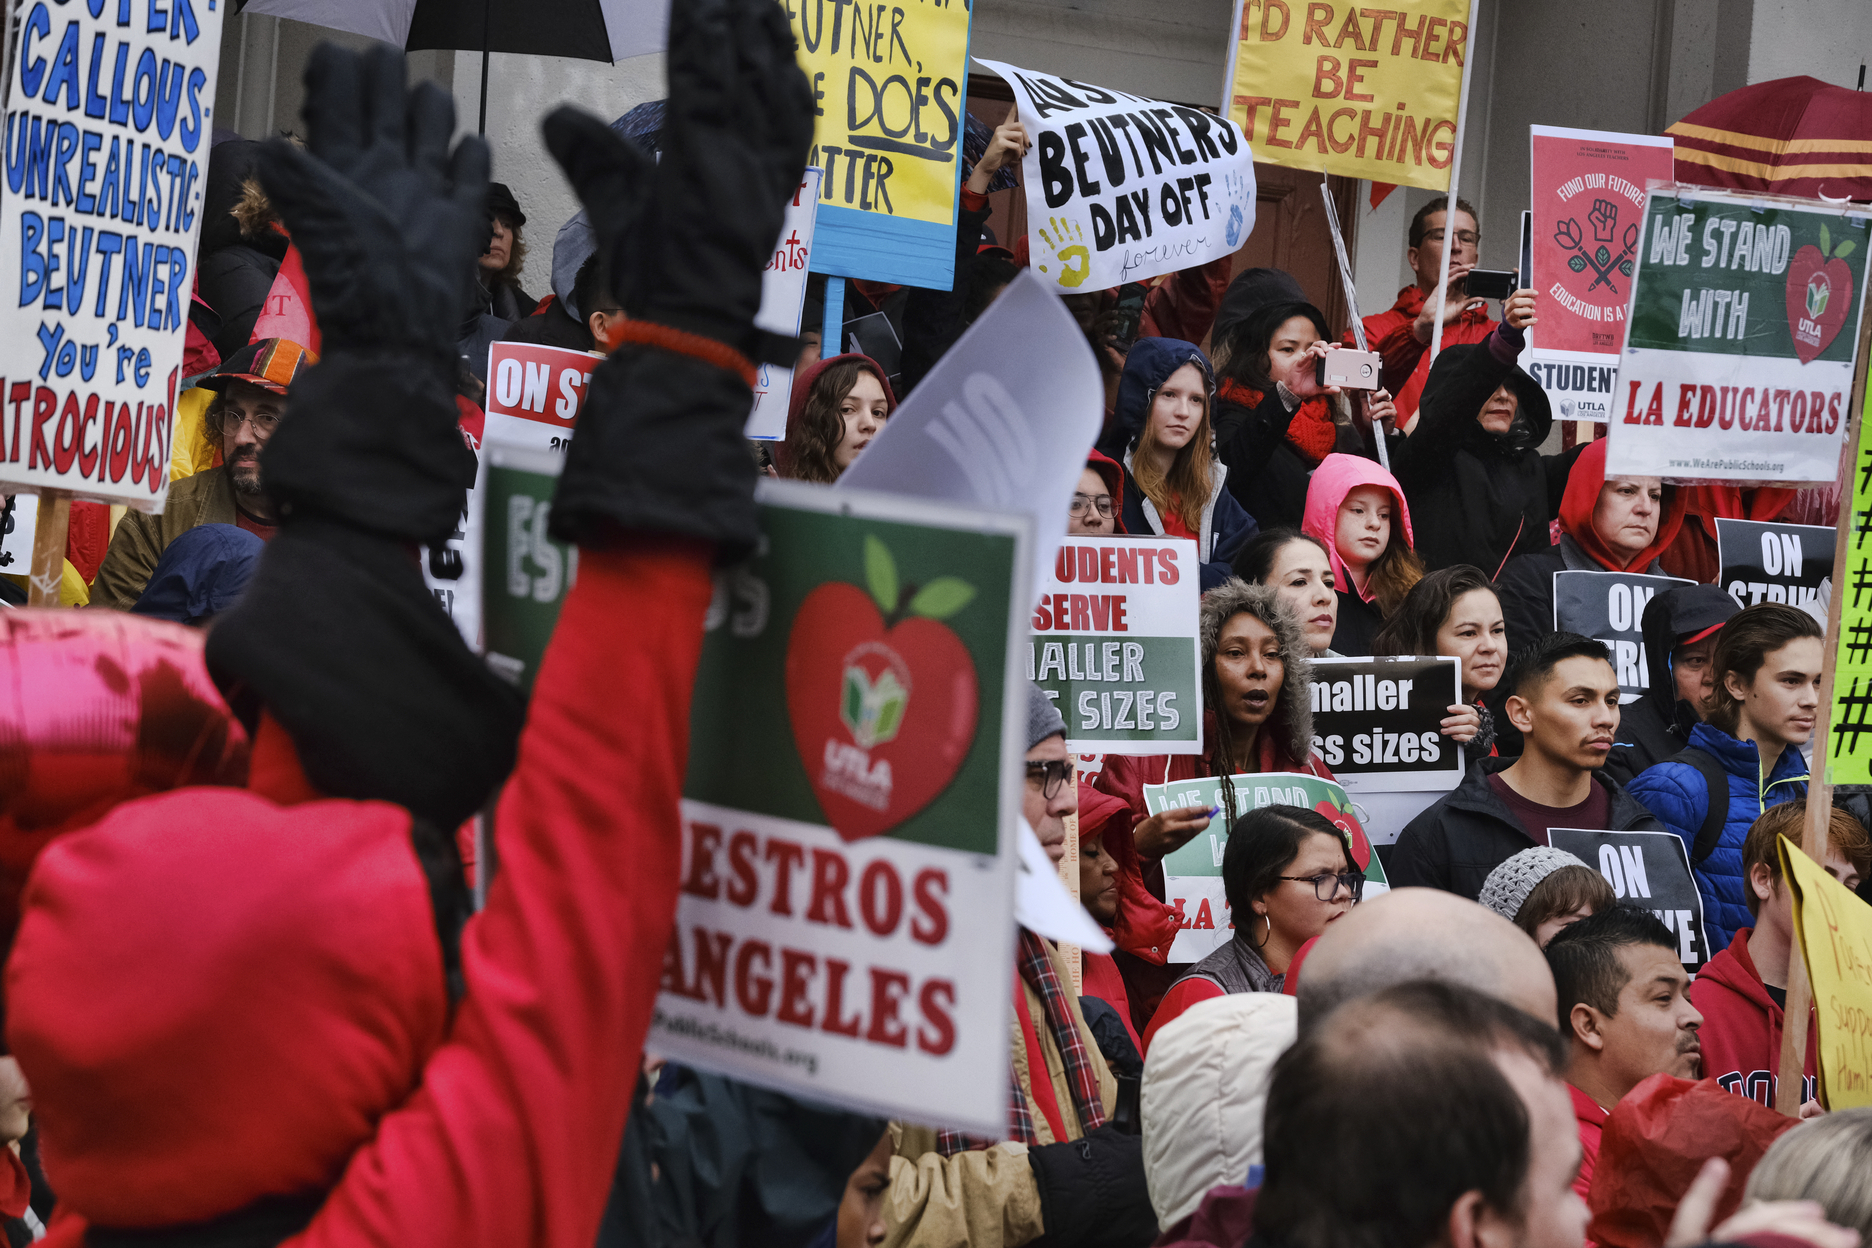 Teachers and students rally in the steps in front of Hamilton High School, Wednesday, Jan. 16, 2019, in Los Angeles, during a citywide teacher strike. (AP Photo/Richard Vogel)